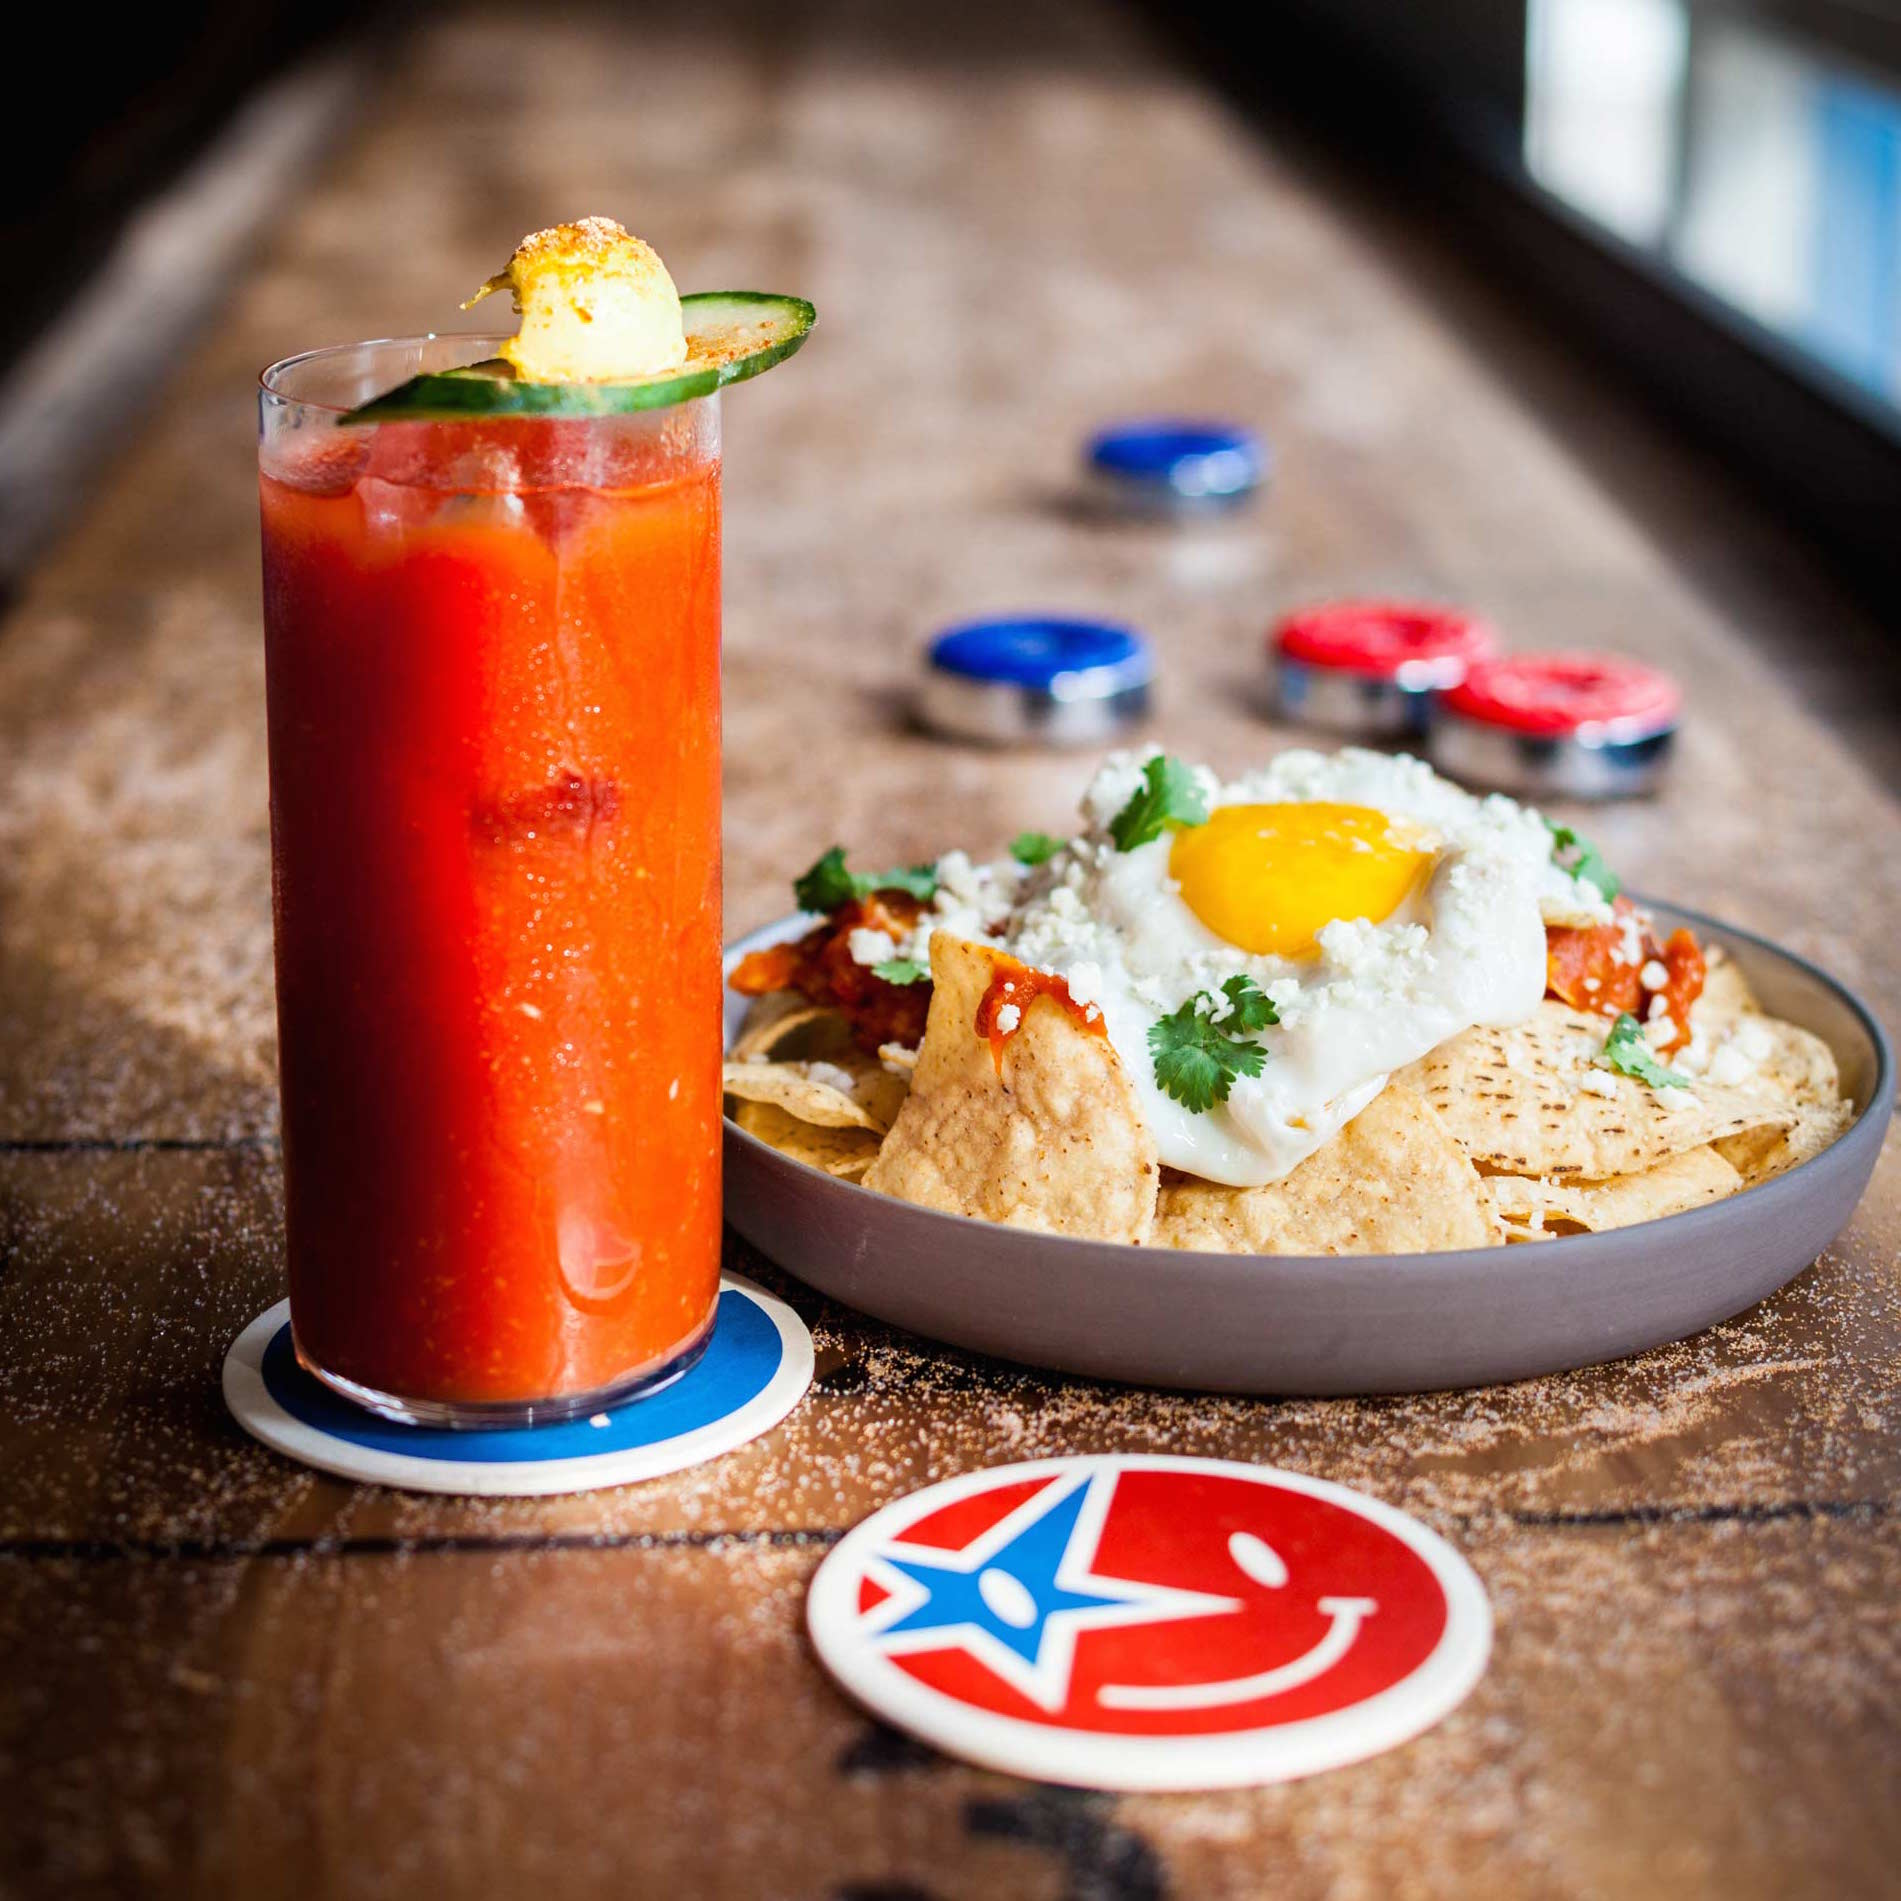 Recover from your hangover at Crackerjack